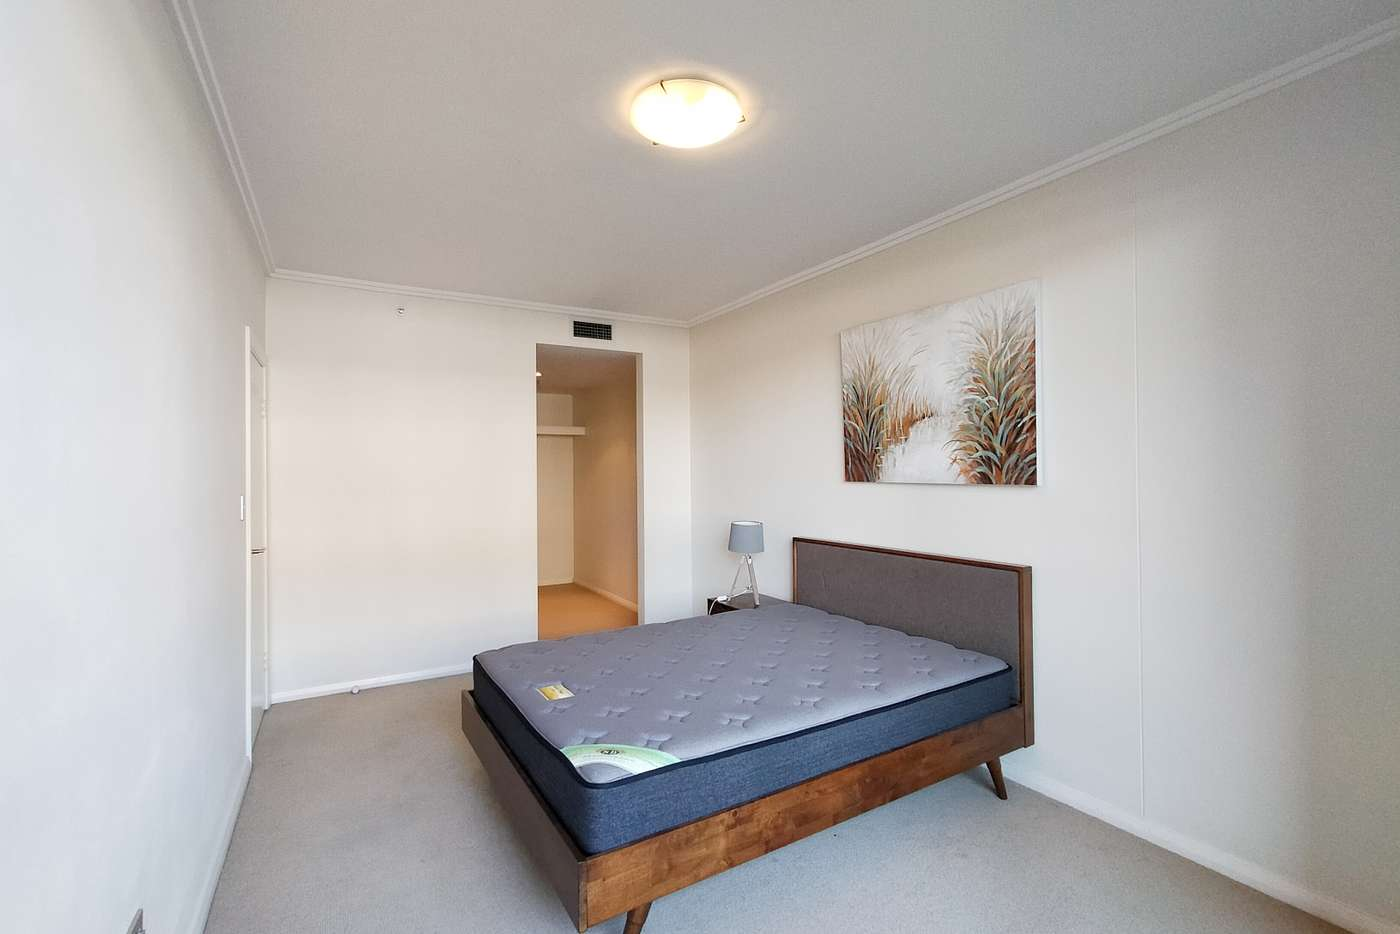 Sixth view of Homely apartment listing, 20/7 Bourke Street, Mascot NSW 2020